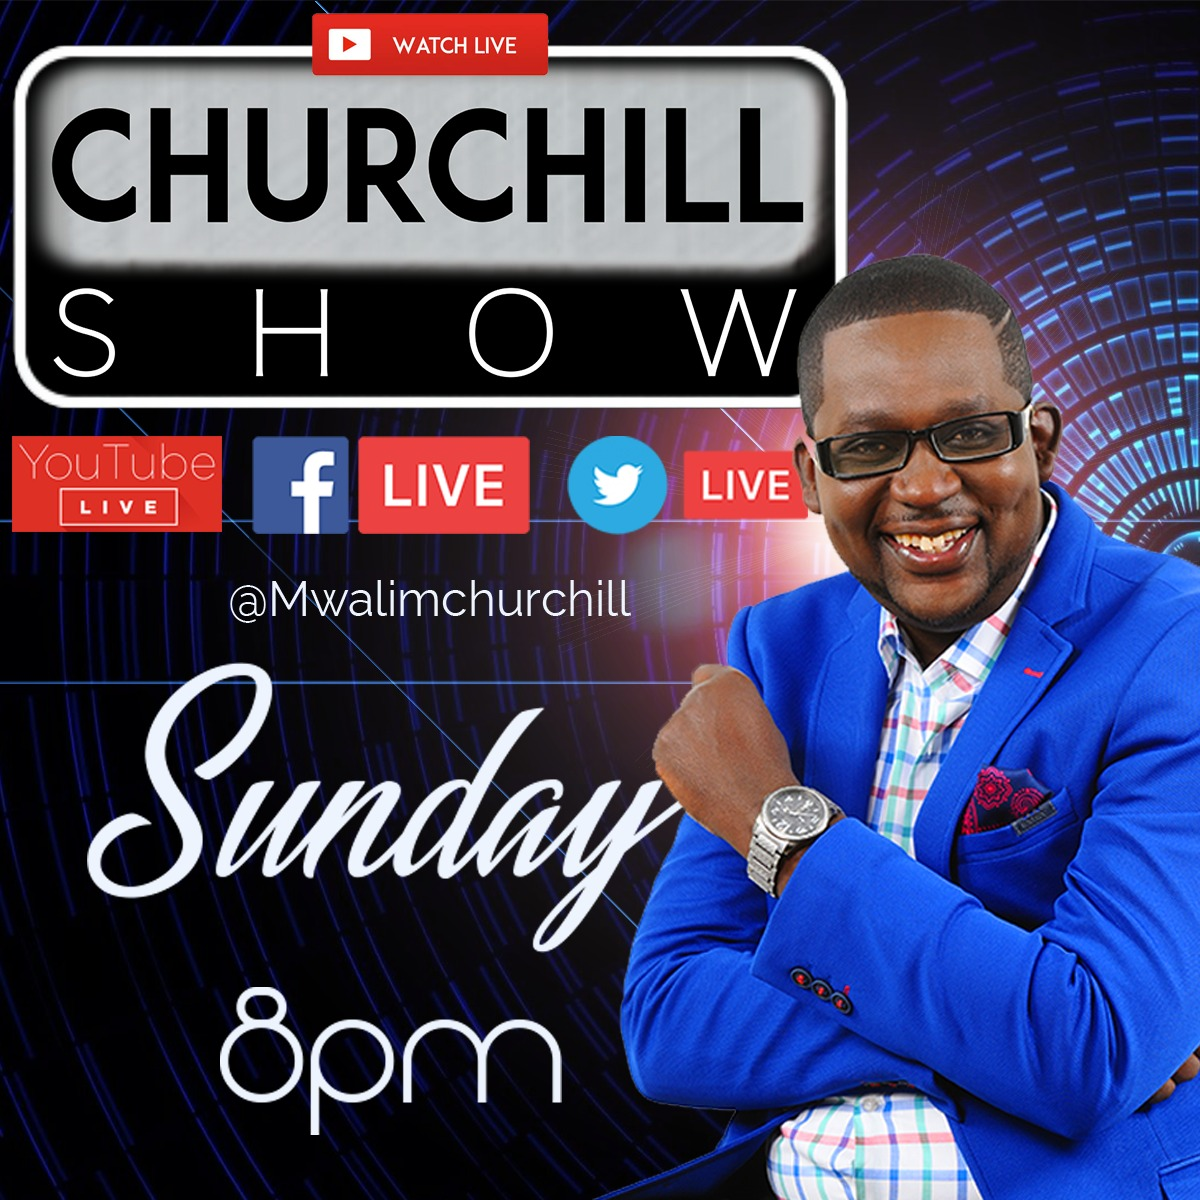 Churchill Show Will Not Be Airing Anymore On NTV